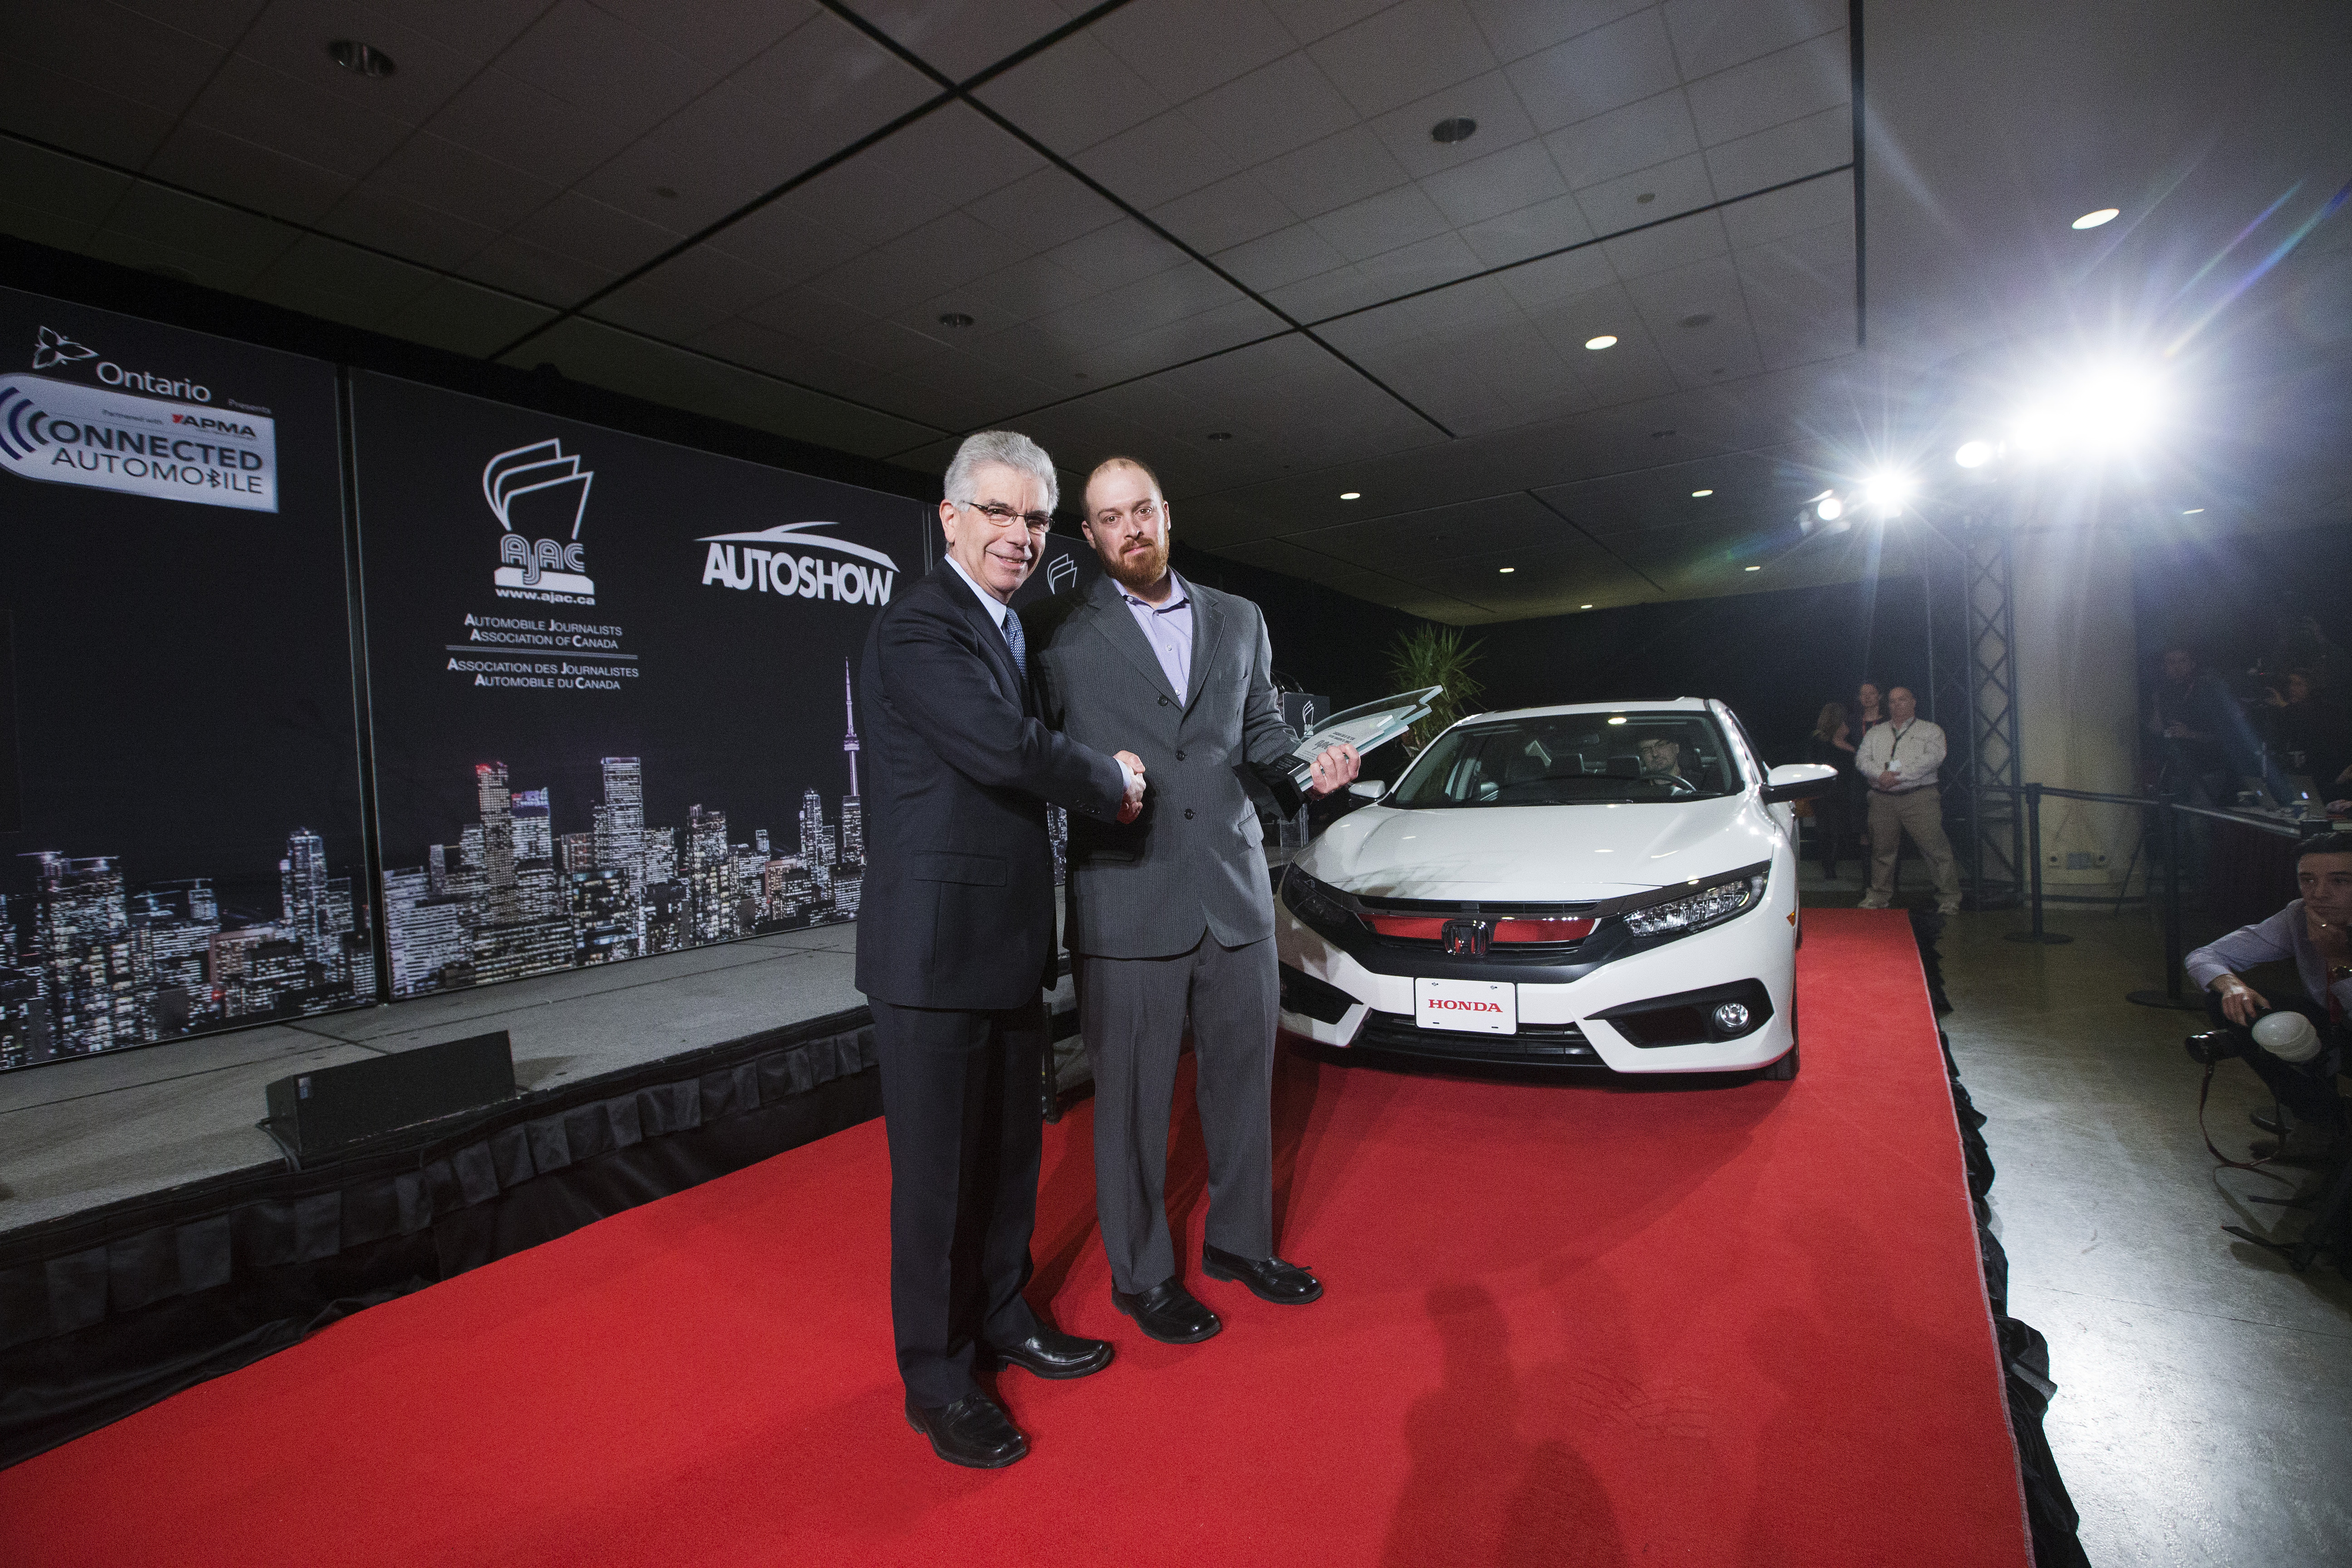 Honda President and CEO Jerry Chenkin, left, and Justin Pritchard, CCOTY co-chair, right, pose for a photo with the Honda Civic which claimed top honours as the 2016 Canadian Car of the Year (CCOTY).   (Photos By: Michelle Siu)